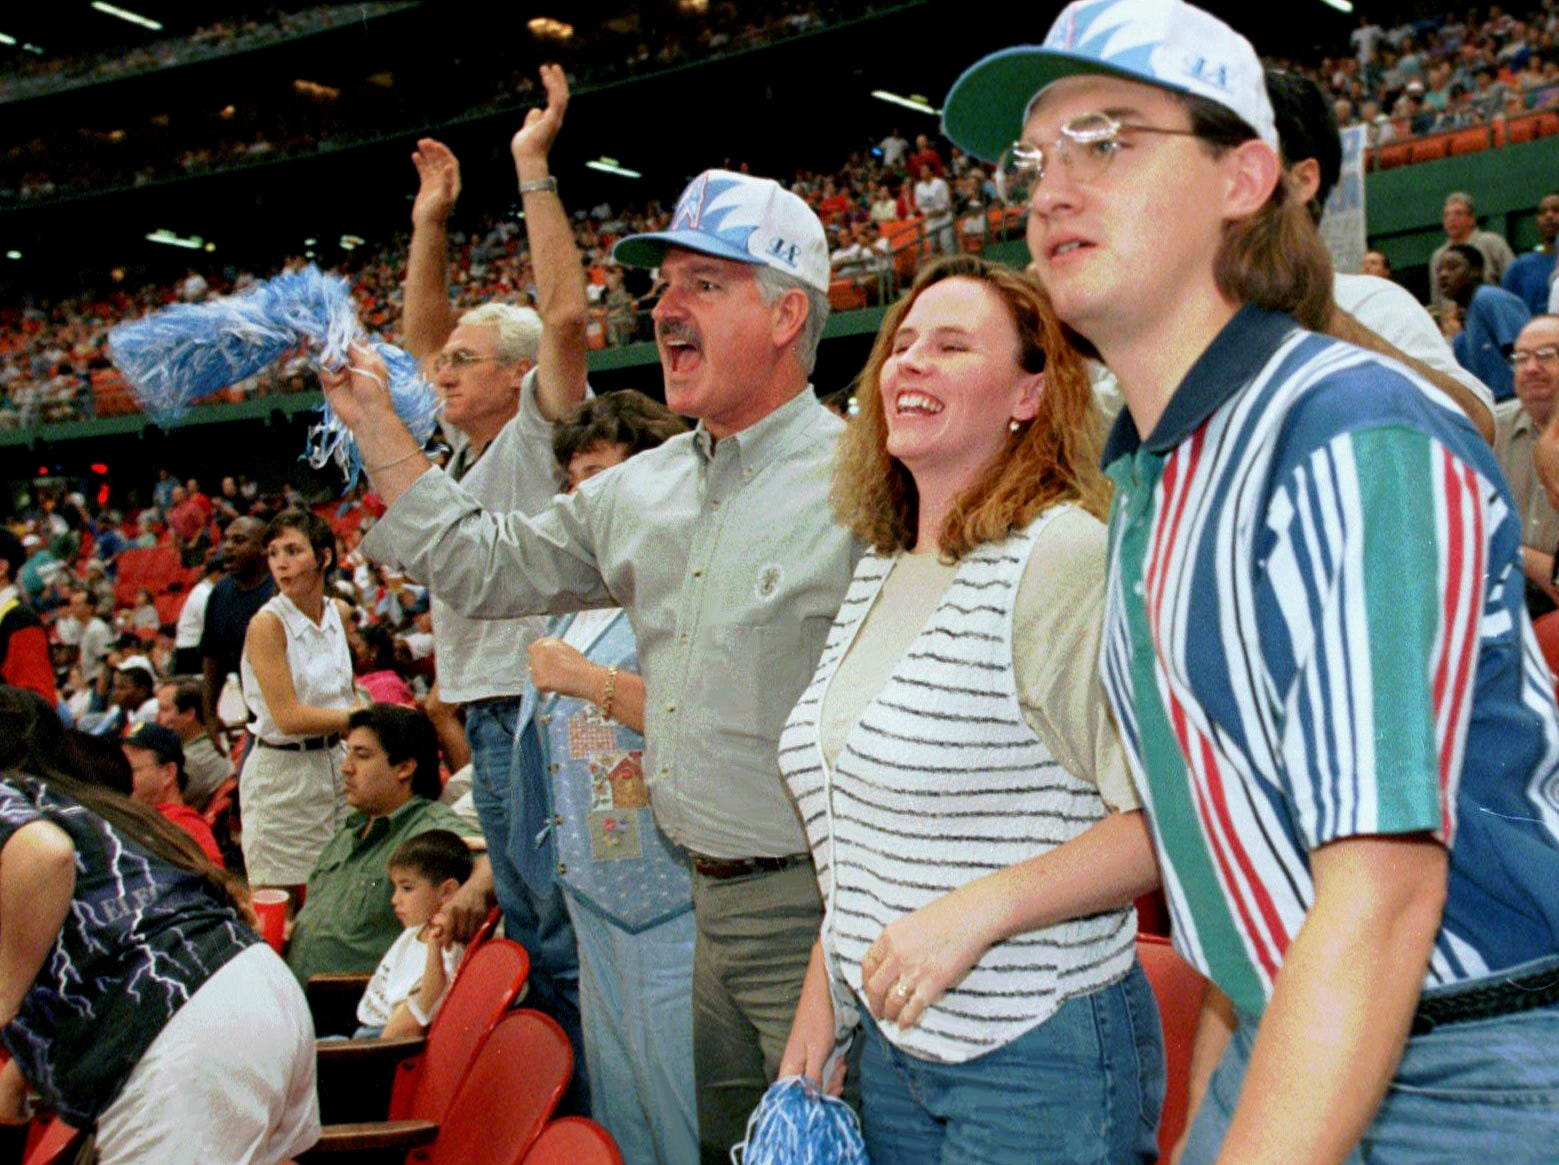 Nashville residents came to the Astrodome in Houston Sept. 1, 1996 to cheer for the Oilers against the Kansas City Chiefs.. They are Laura Allen, left, Ken Allen, Denise and Scott Jungmichel.